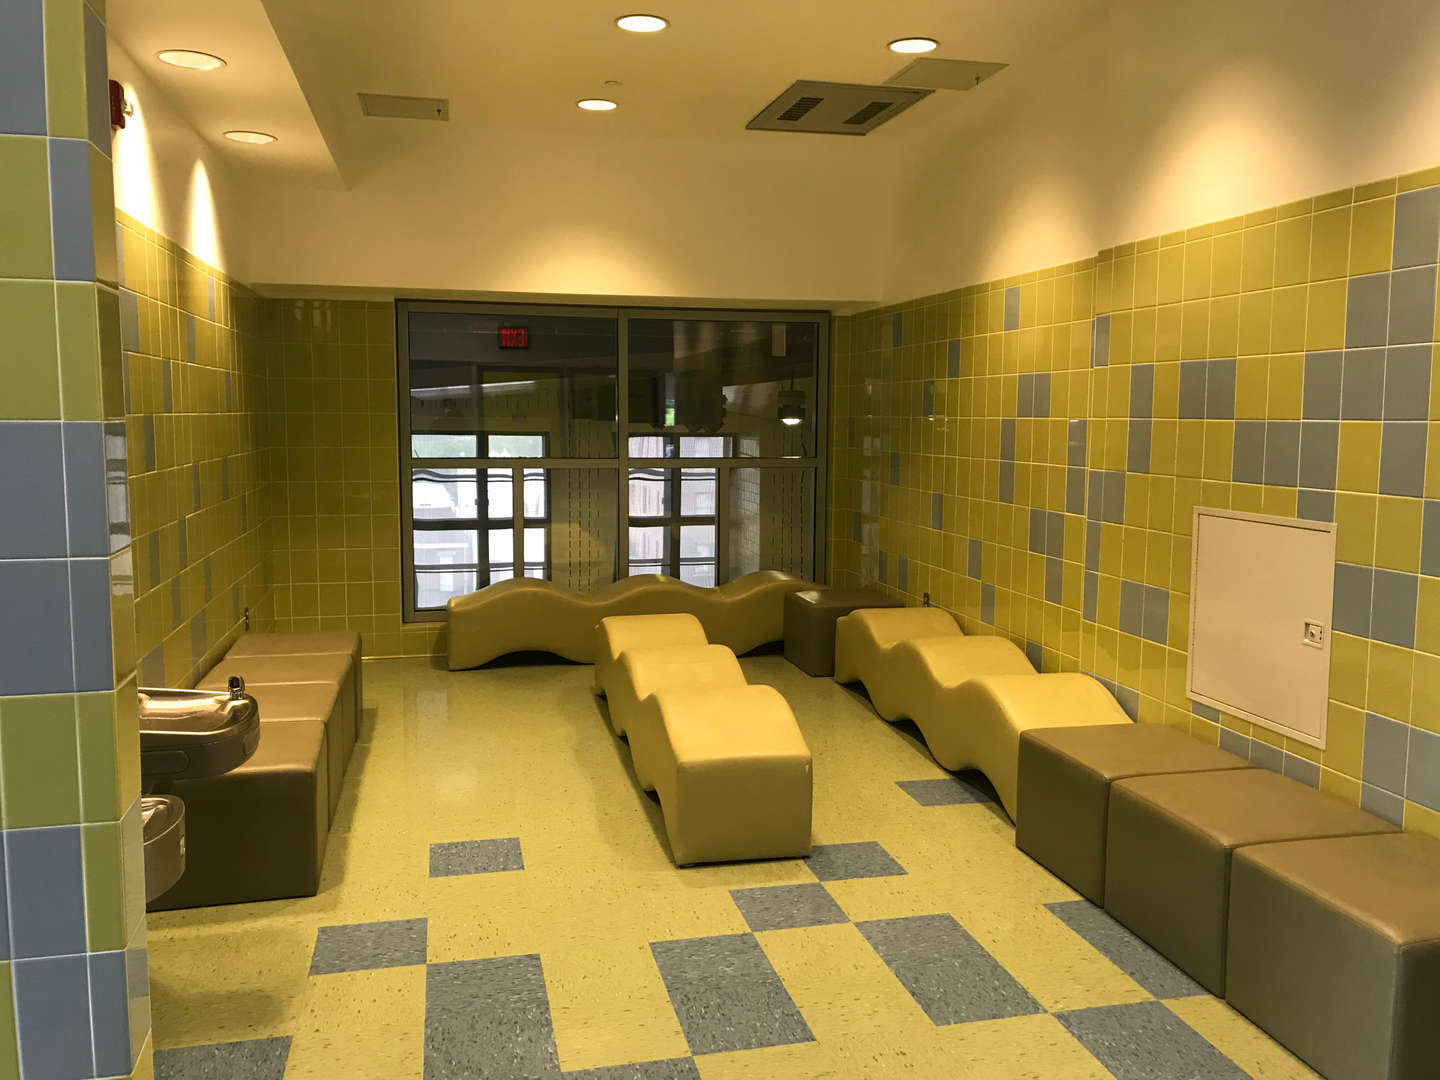 2nd floor hallway seating area for students.